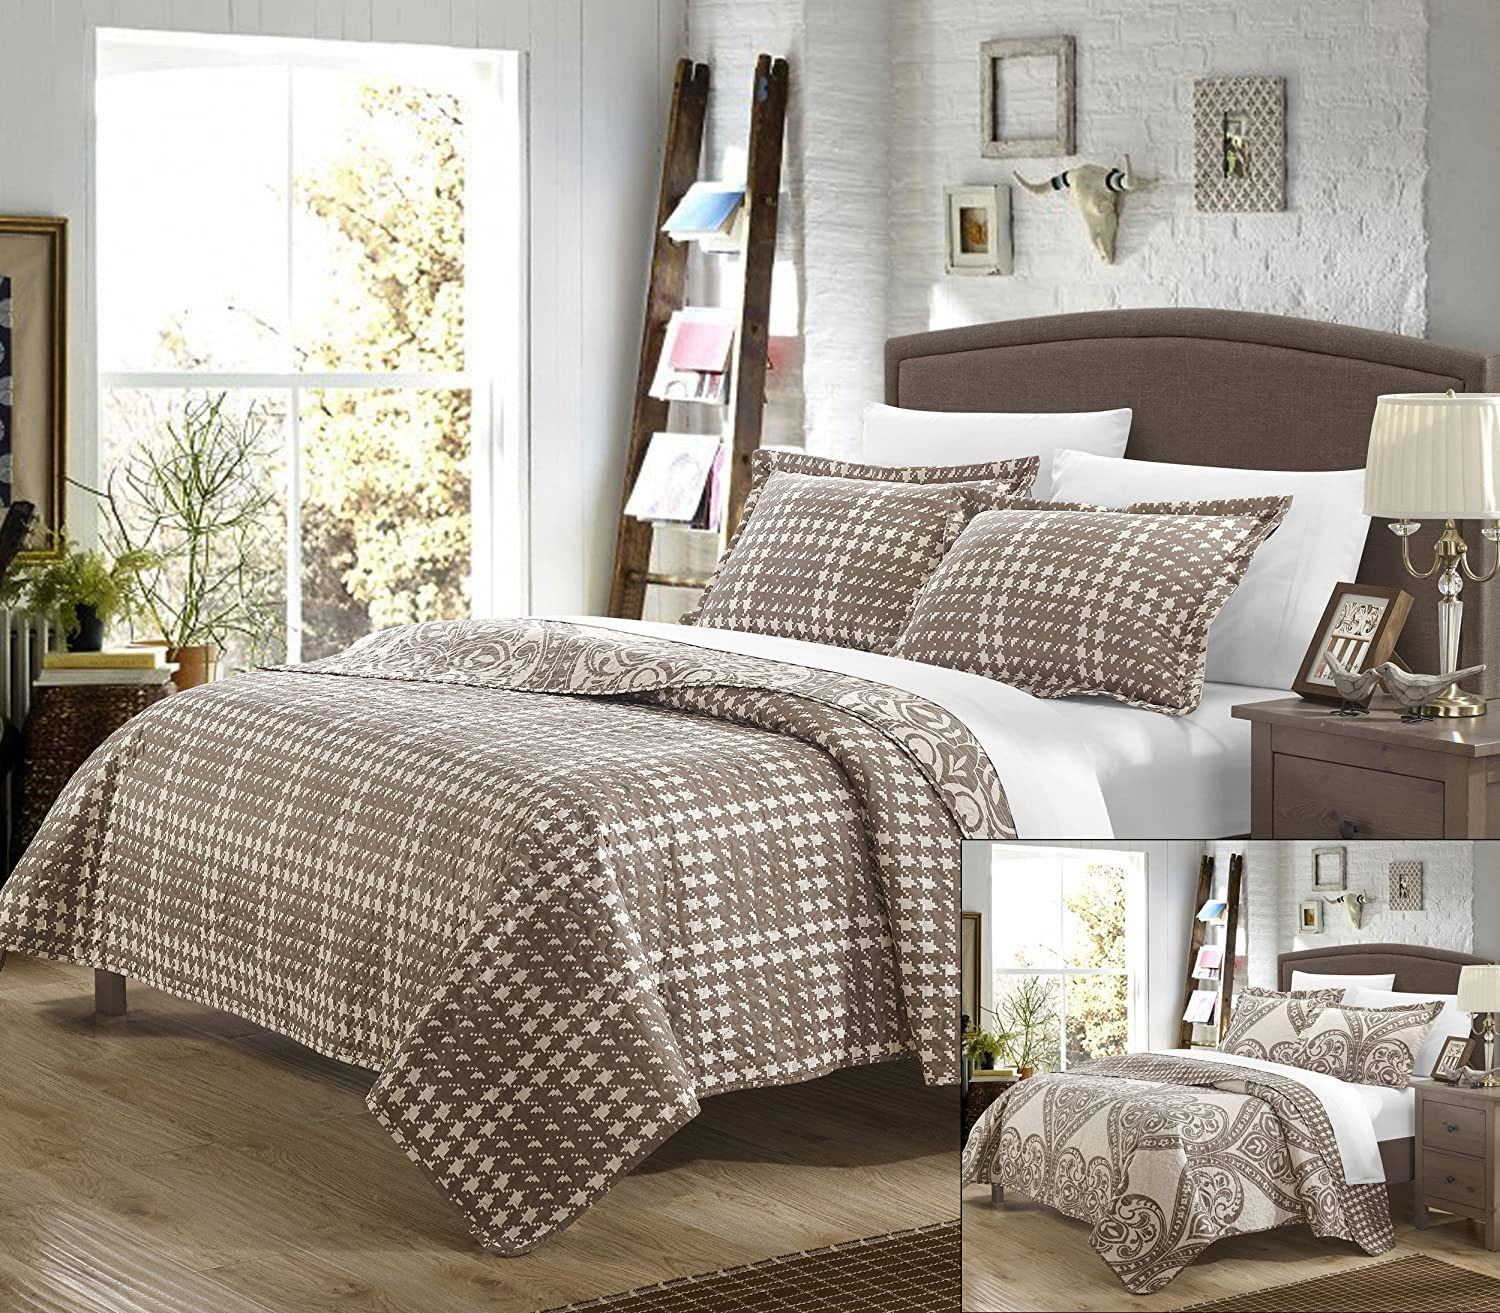 Perfect Home 3 Piece Pastola REVERSIBLE printed Quilt Set. Front a traditional pattern and Reverses into a houndstooth pattern, Queen, Beige